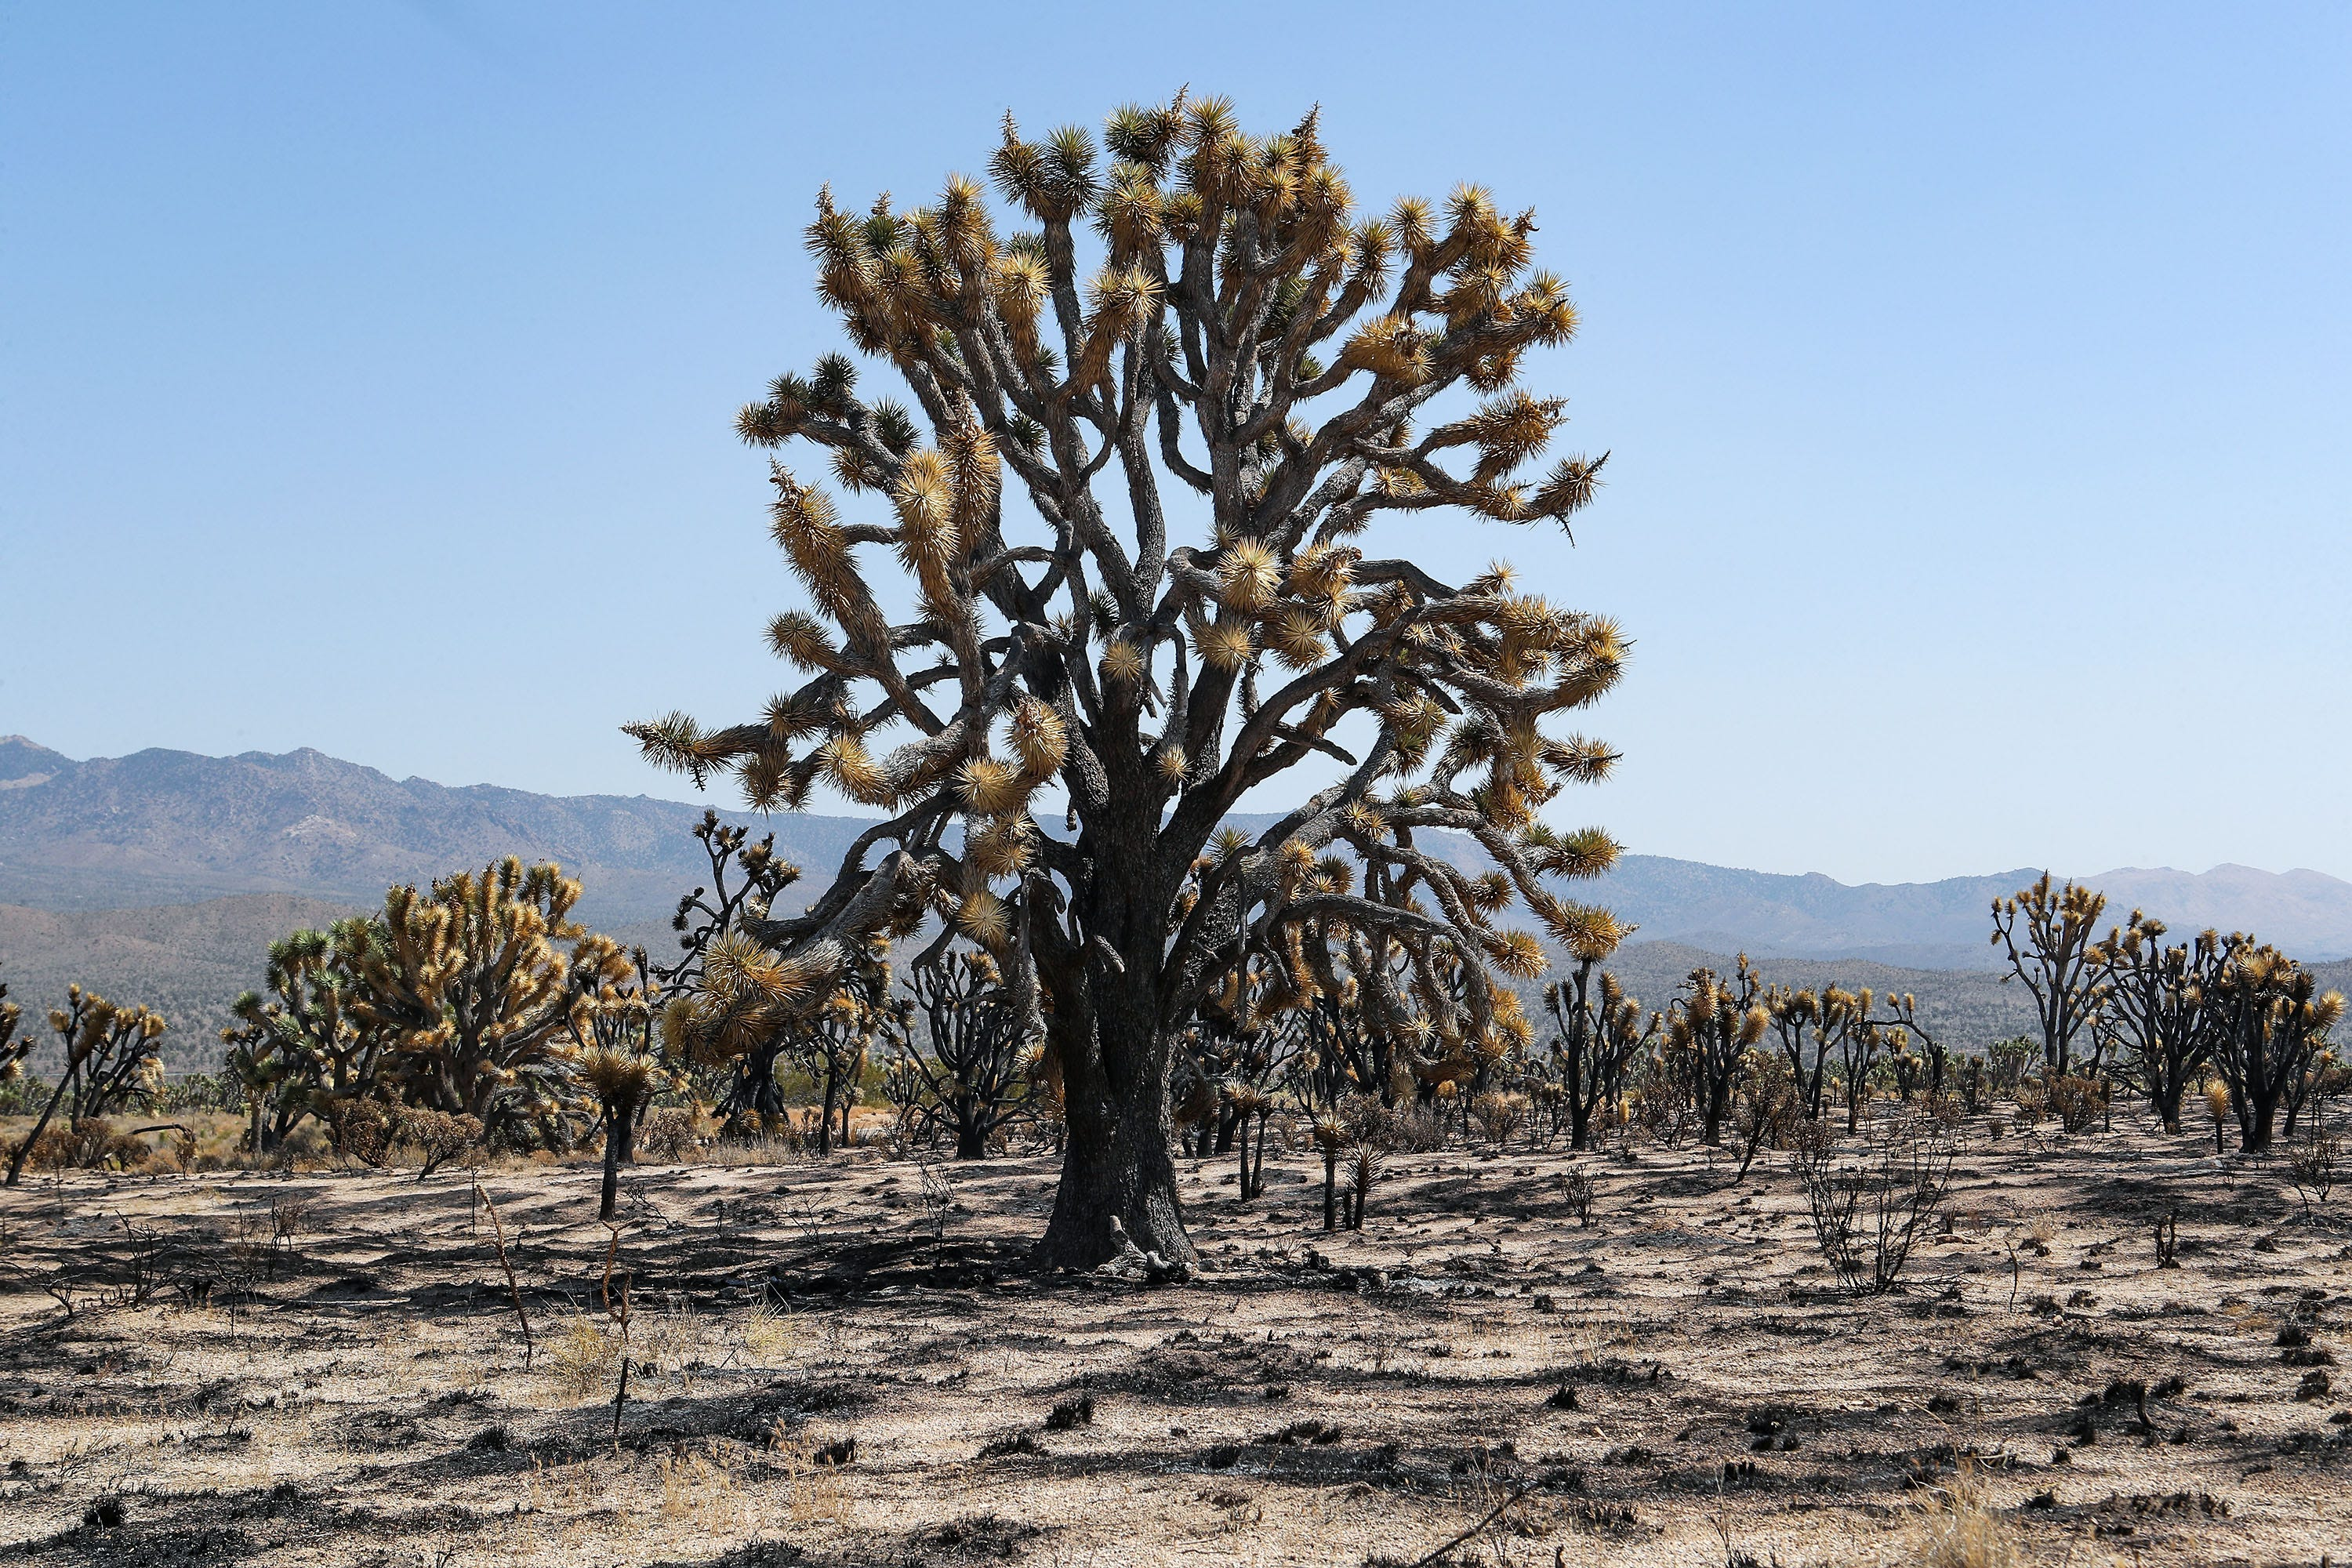 A large eastern Joshua tree was burned in the Dome Fire in the Mojave National Preserve.